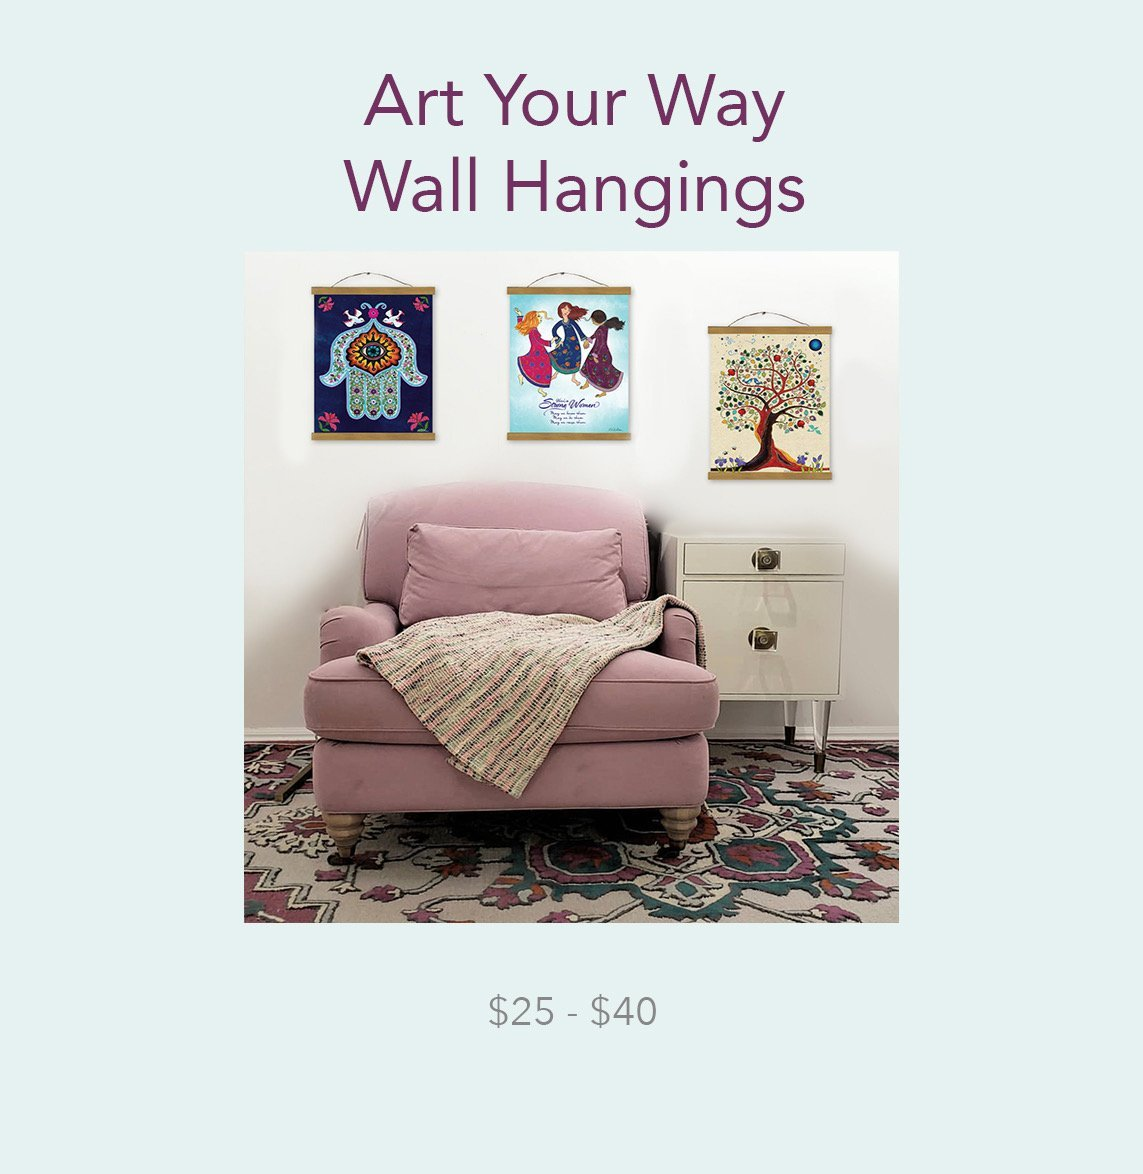 Art Your Way Wall Hangings